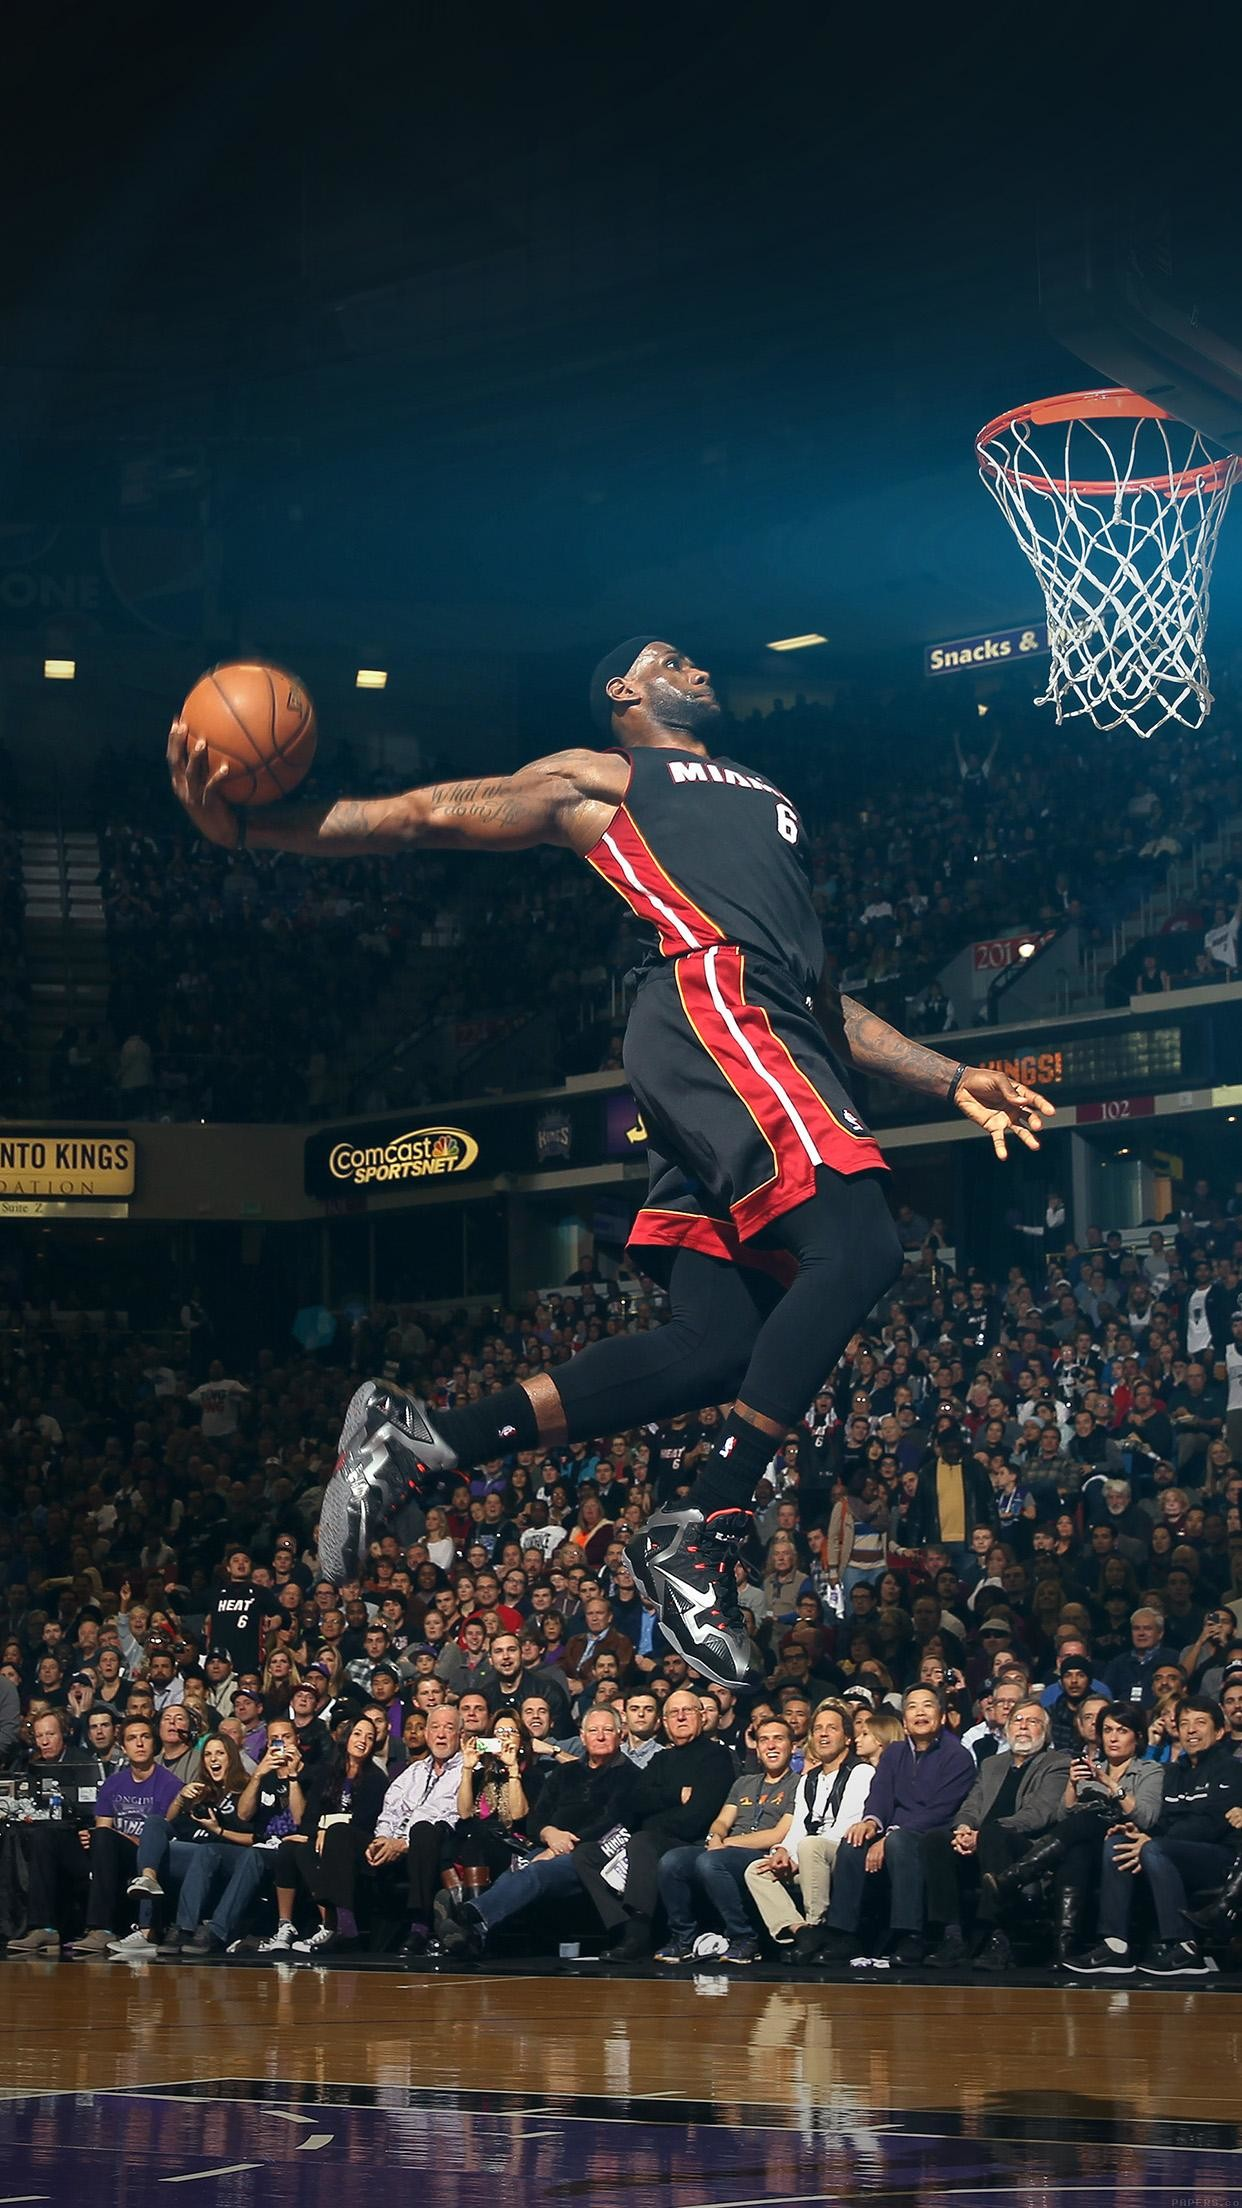 Cool Nba Wallpapers For Iphone 65 Images